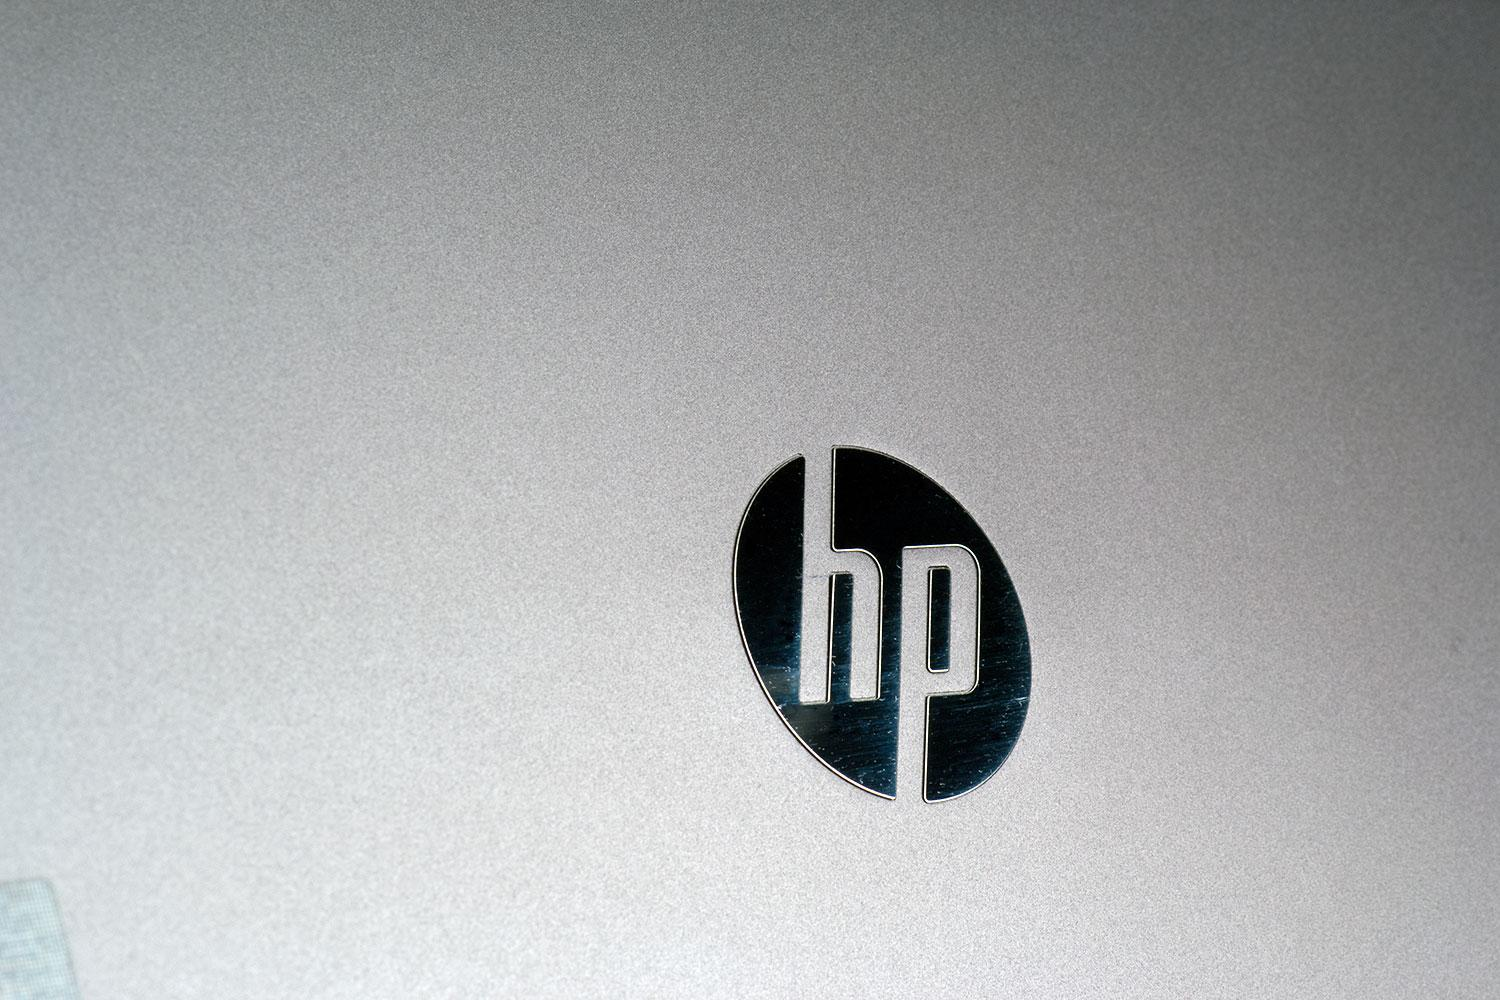 Hp 8 1401 Tablet Announced Digital Trends